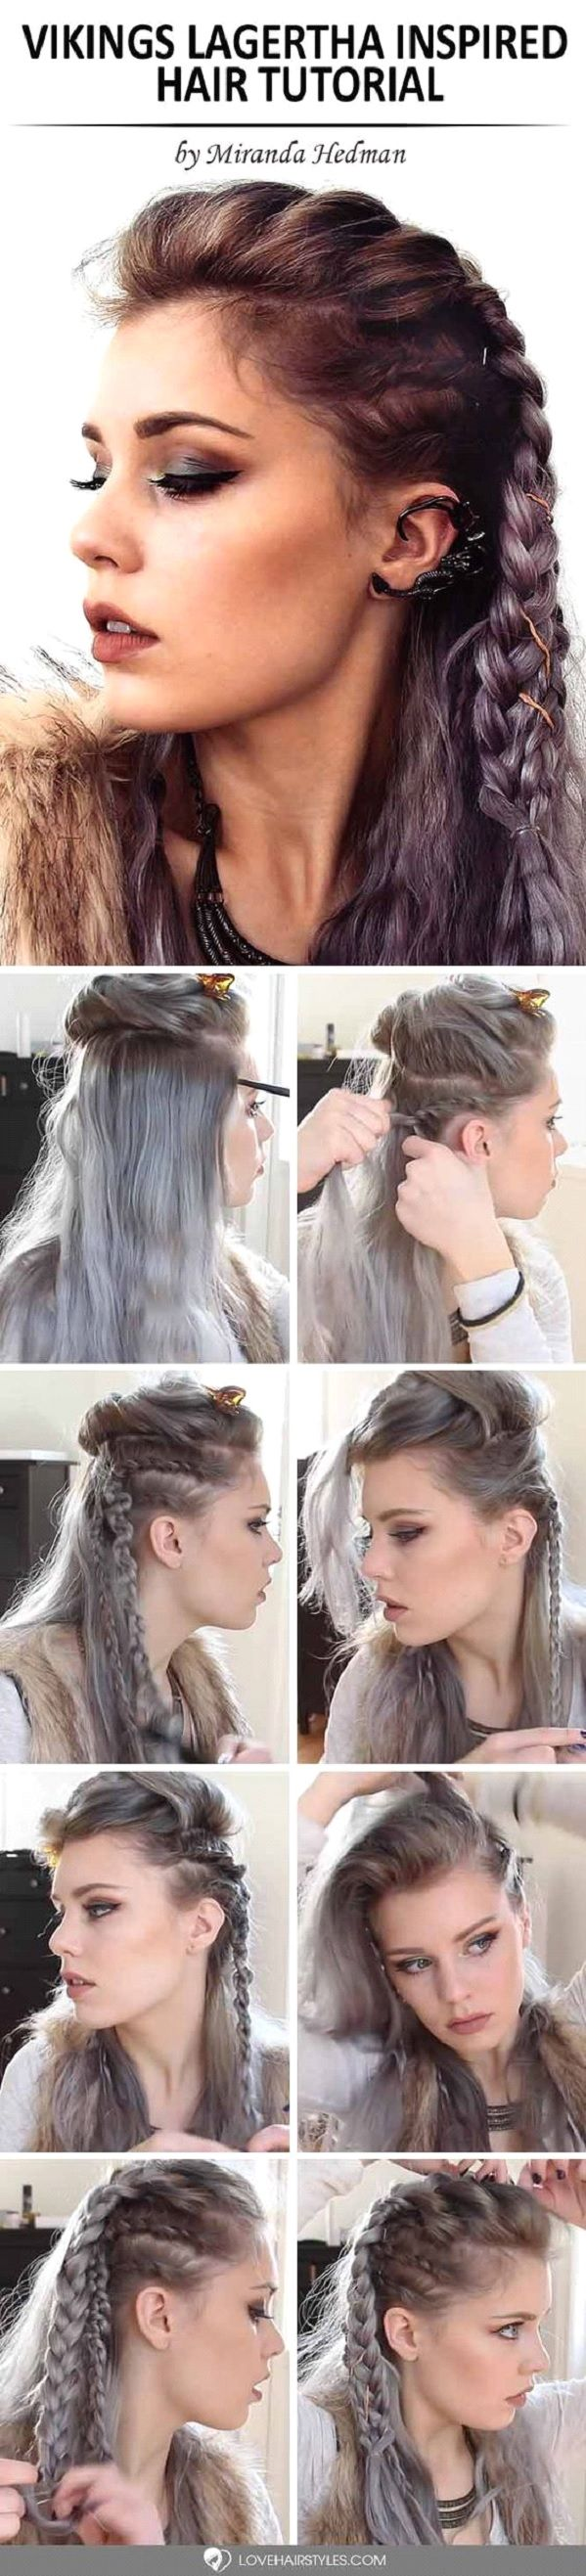 Get the Style of Lagertha from Vikings | Makeup Mania